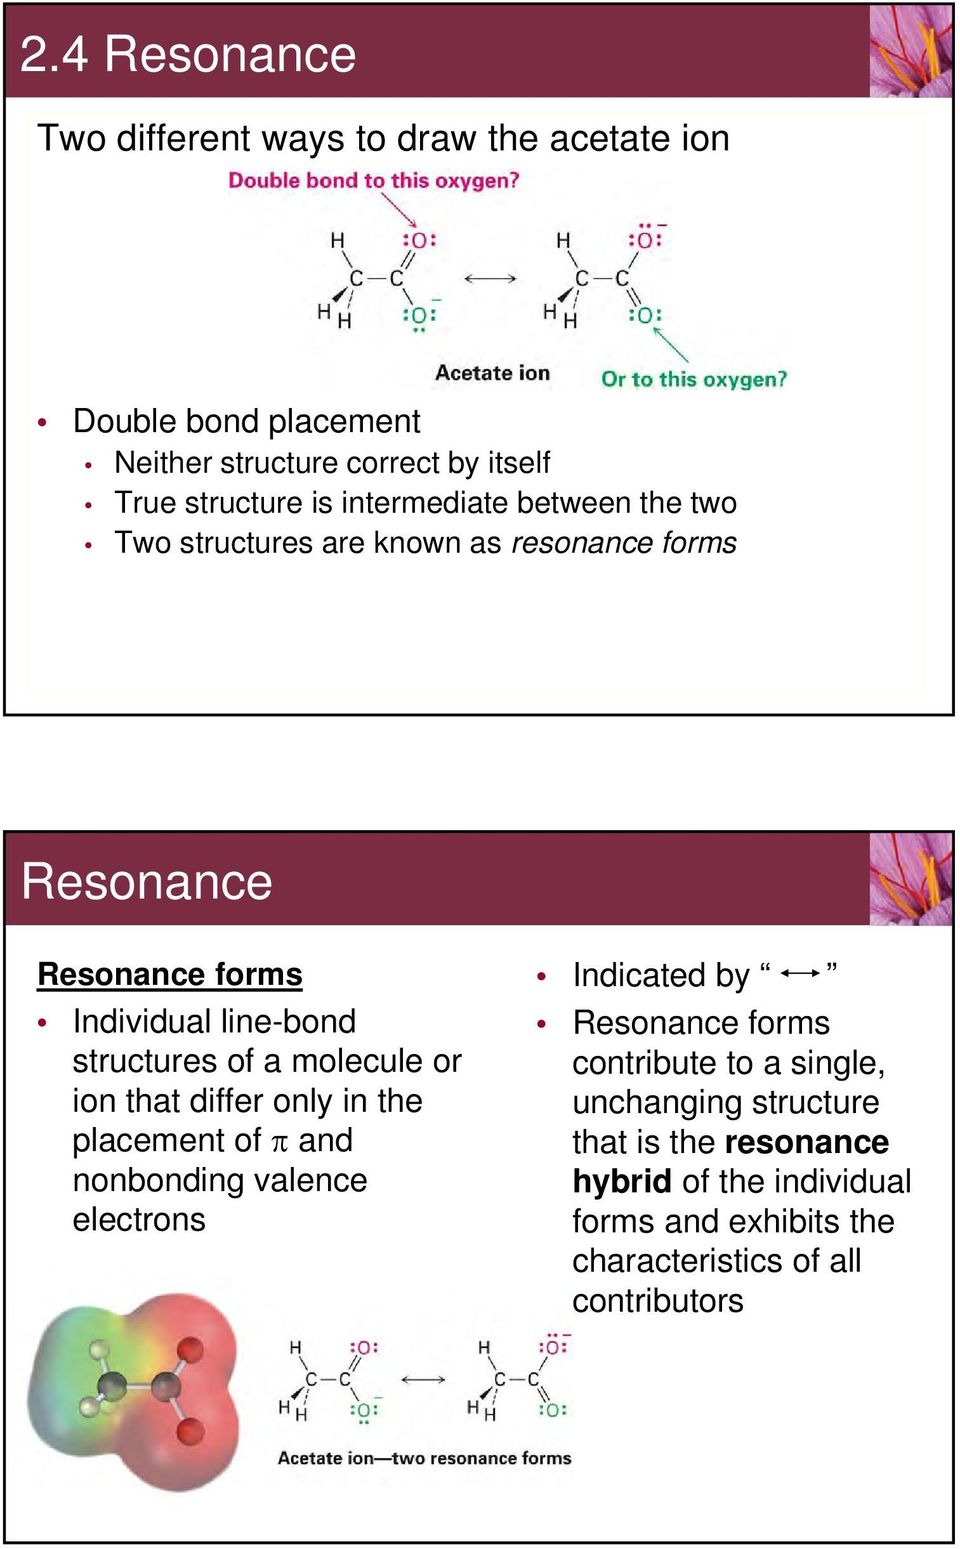 a molecule or ion that differ only in the placement of and nonbonding valence electrons Indicated by Resonance forms contribute to a